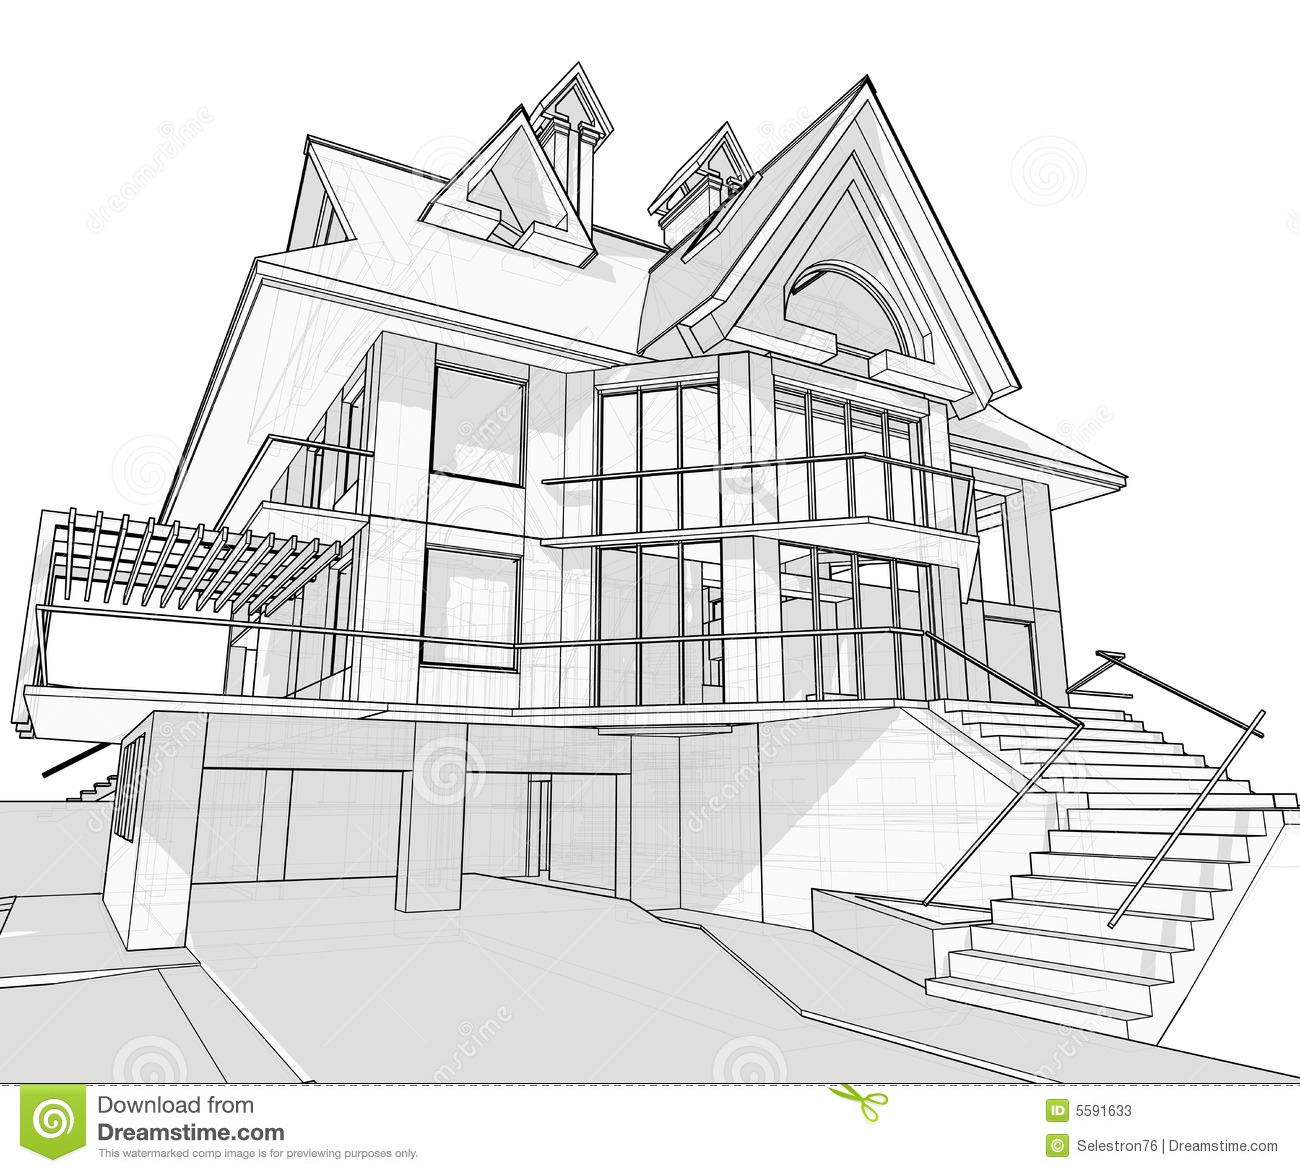 House architecture blueprint stock vector illustration for House blueprints